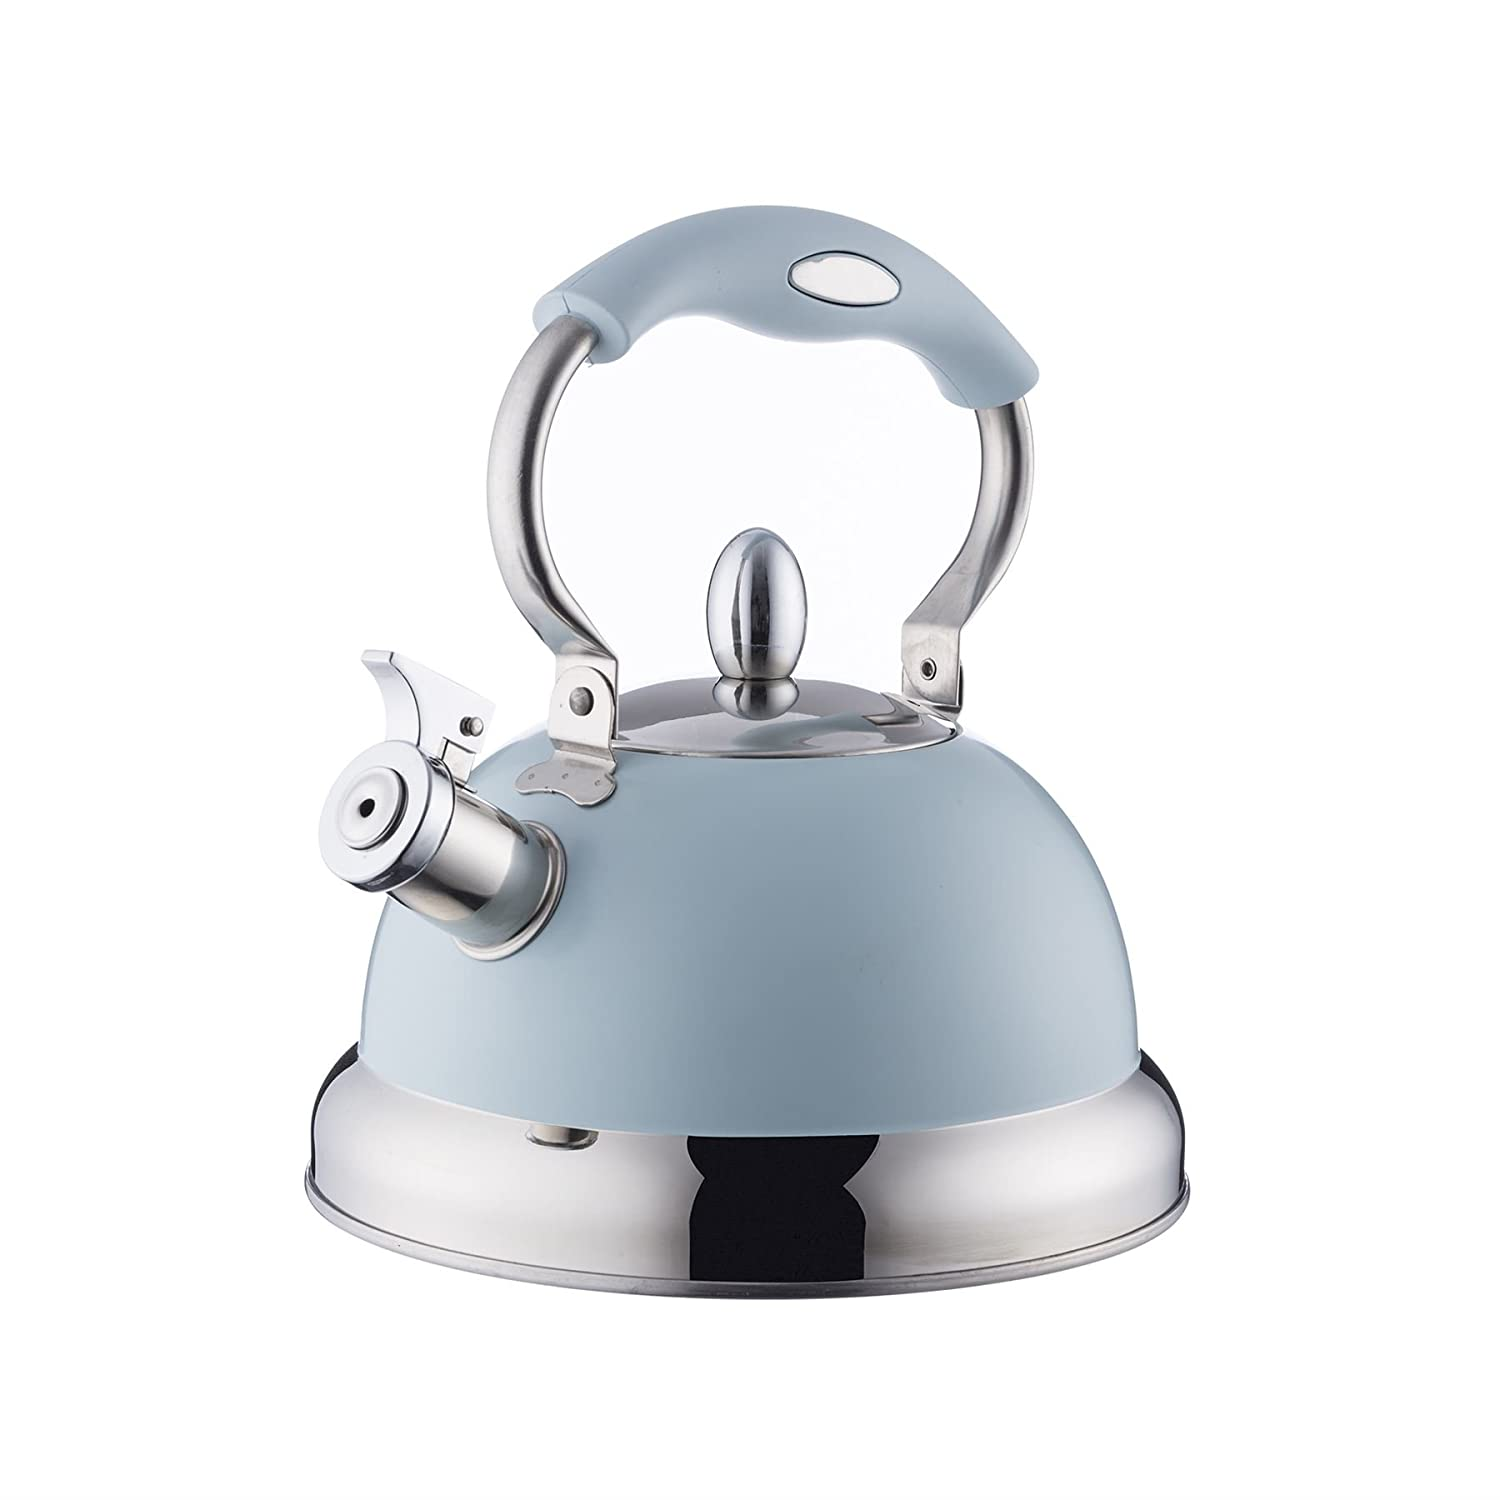 BLUE 2.5L STOVE TOP KETTLE WHISTLE ALL HOBS 22CM X 24.5CM X 26.5CM